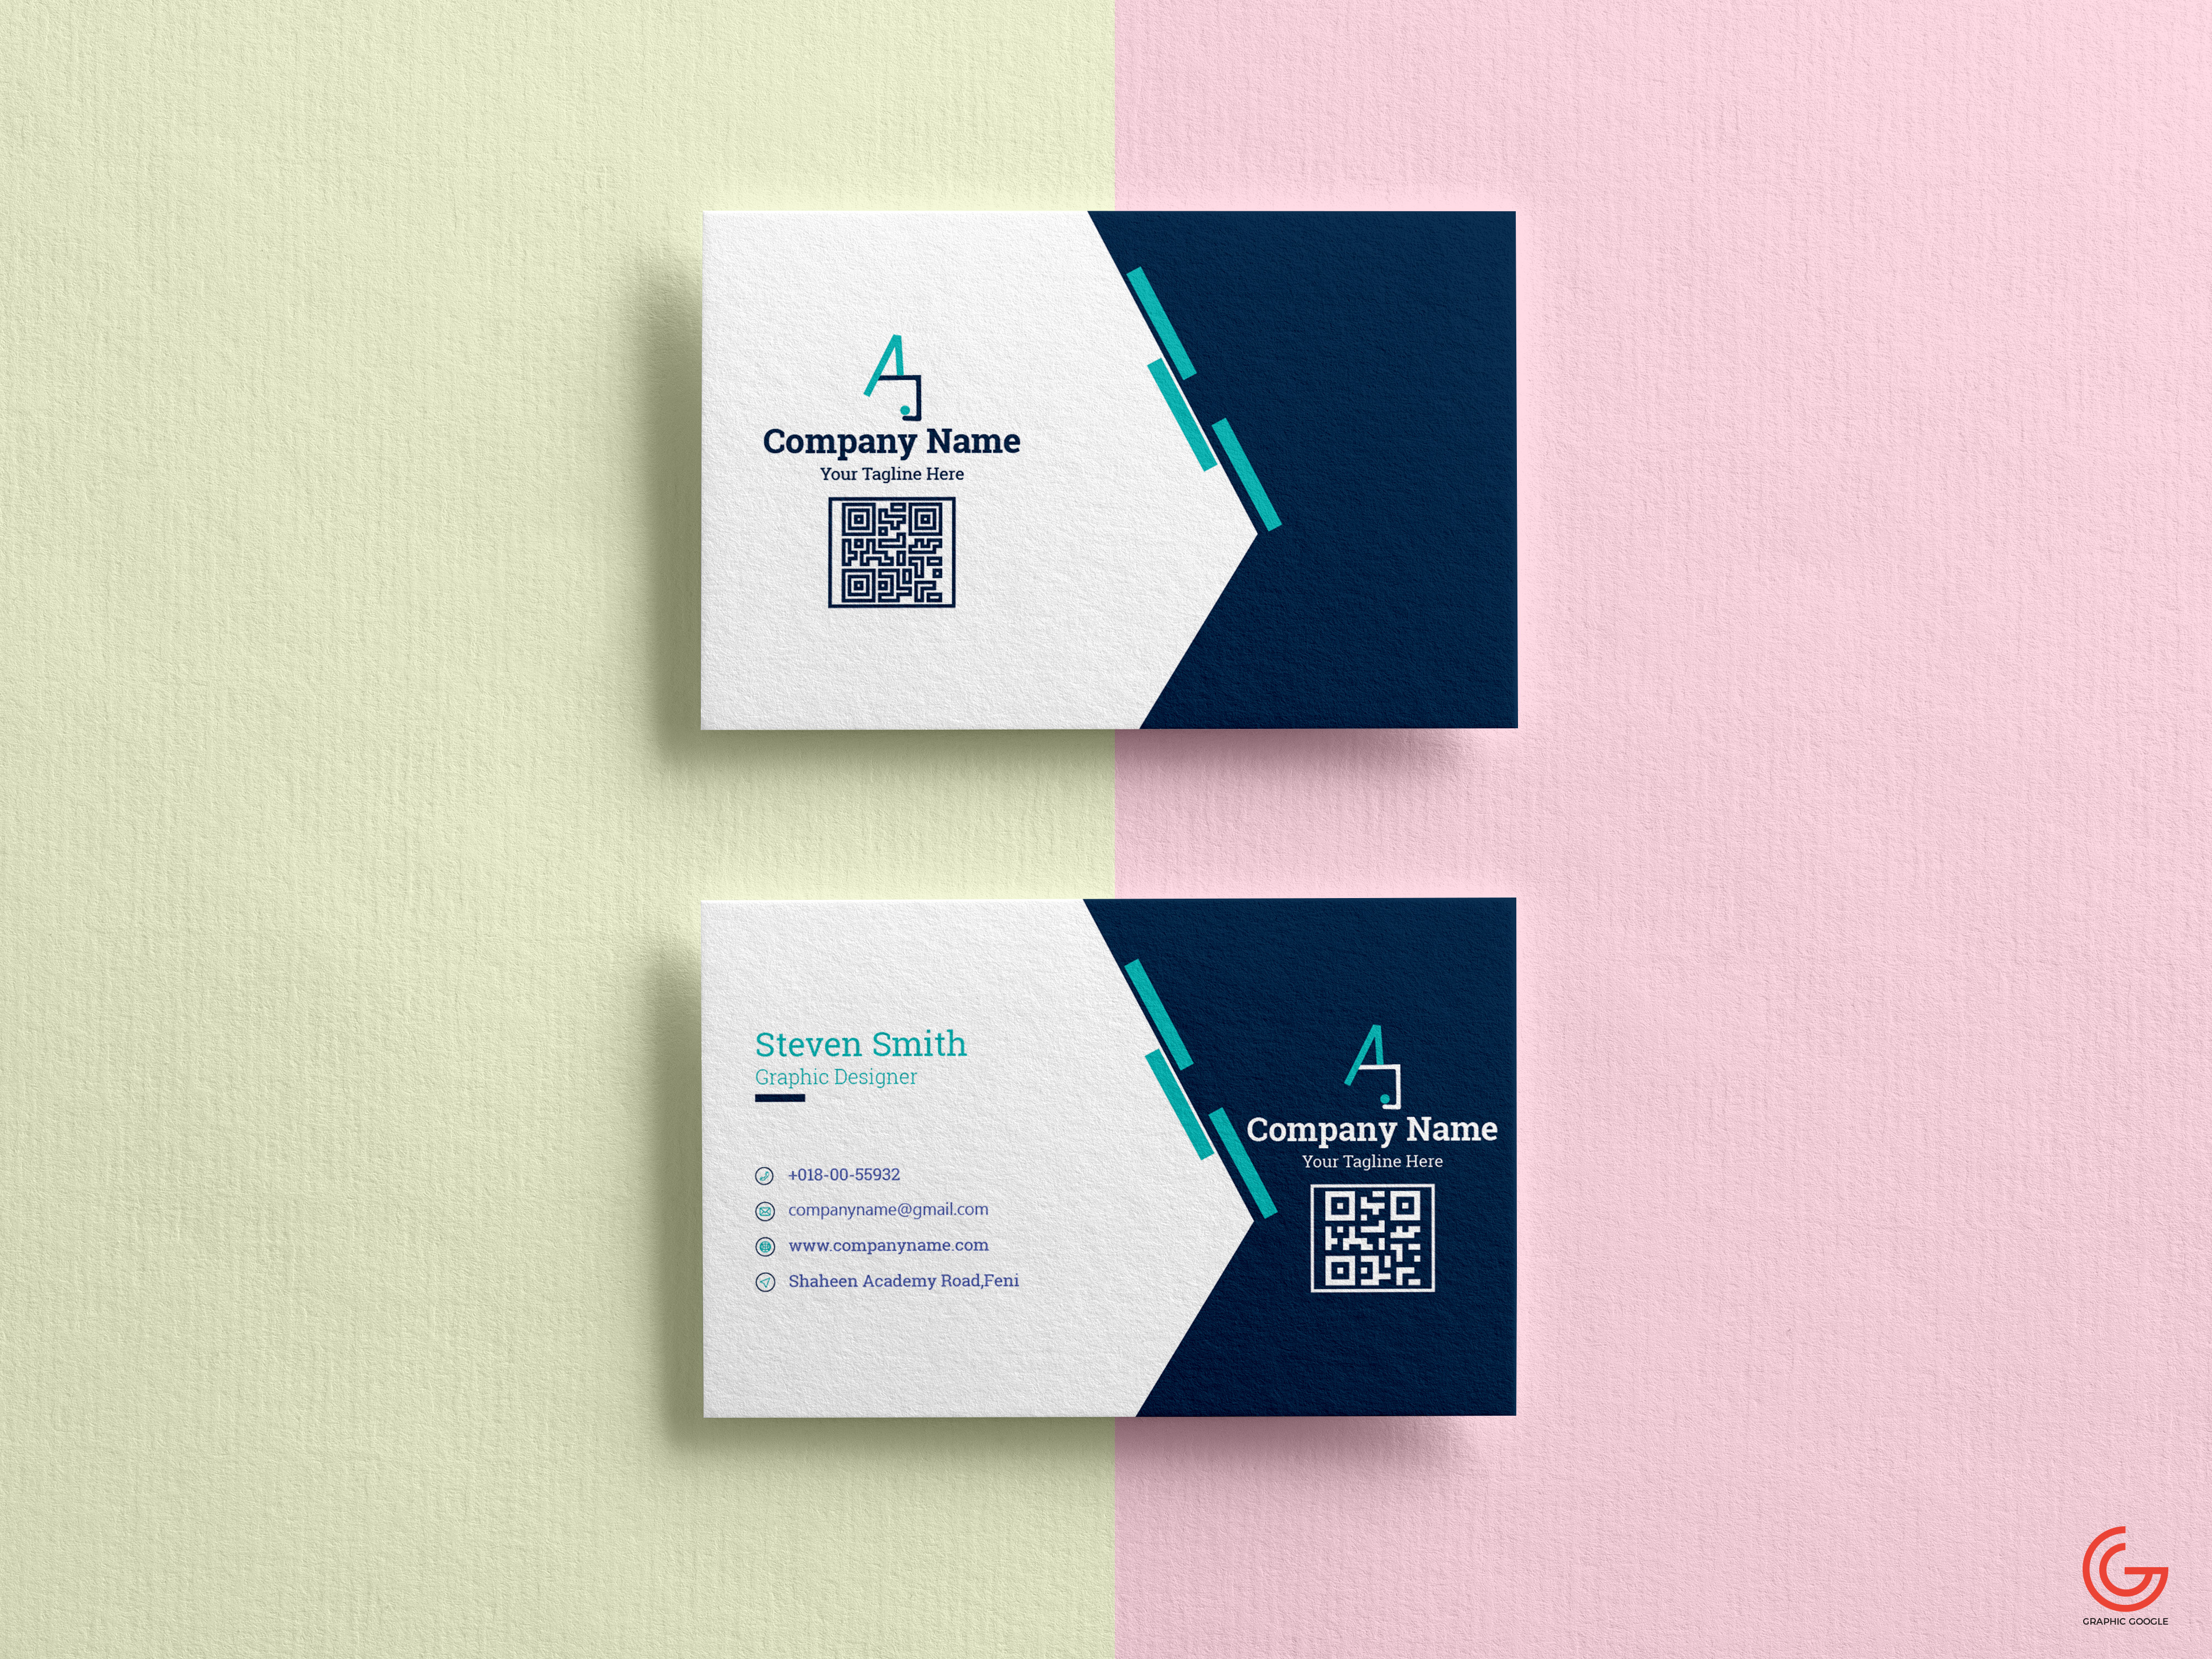 I will design professional business card, letterhead, stationary in print ready format express 3 hours